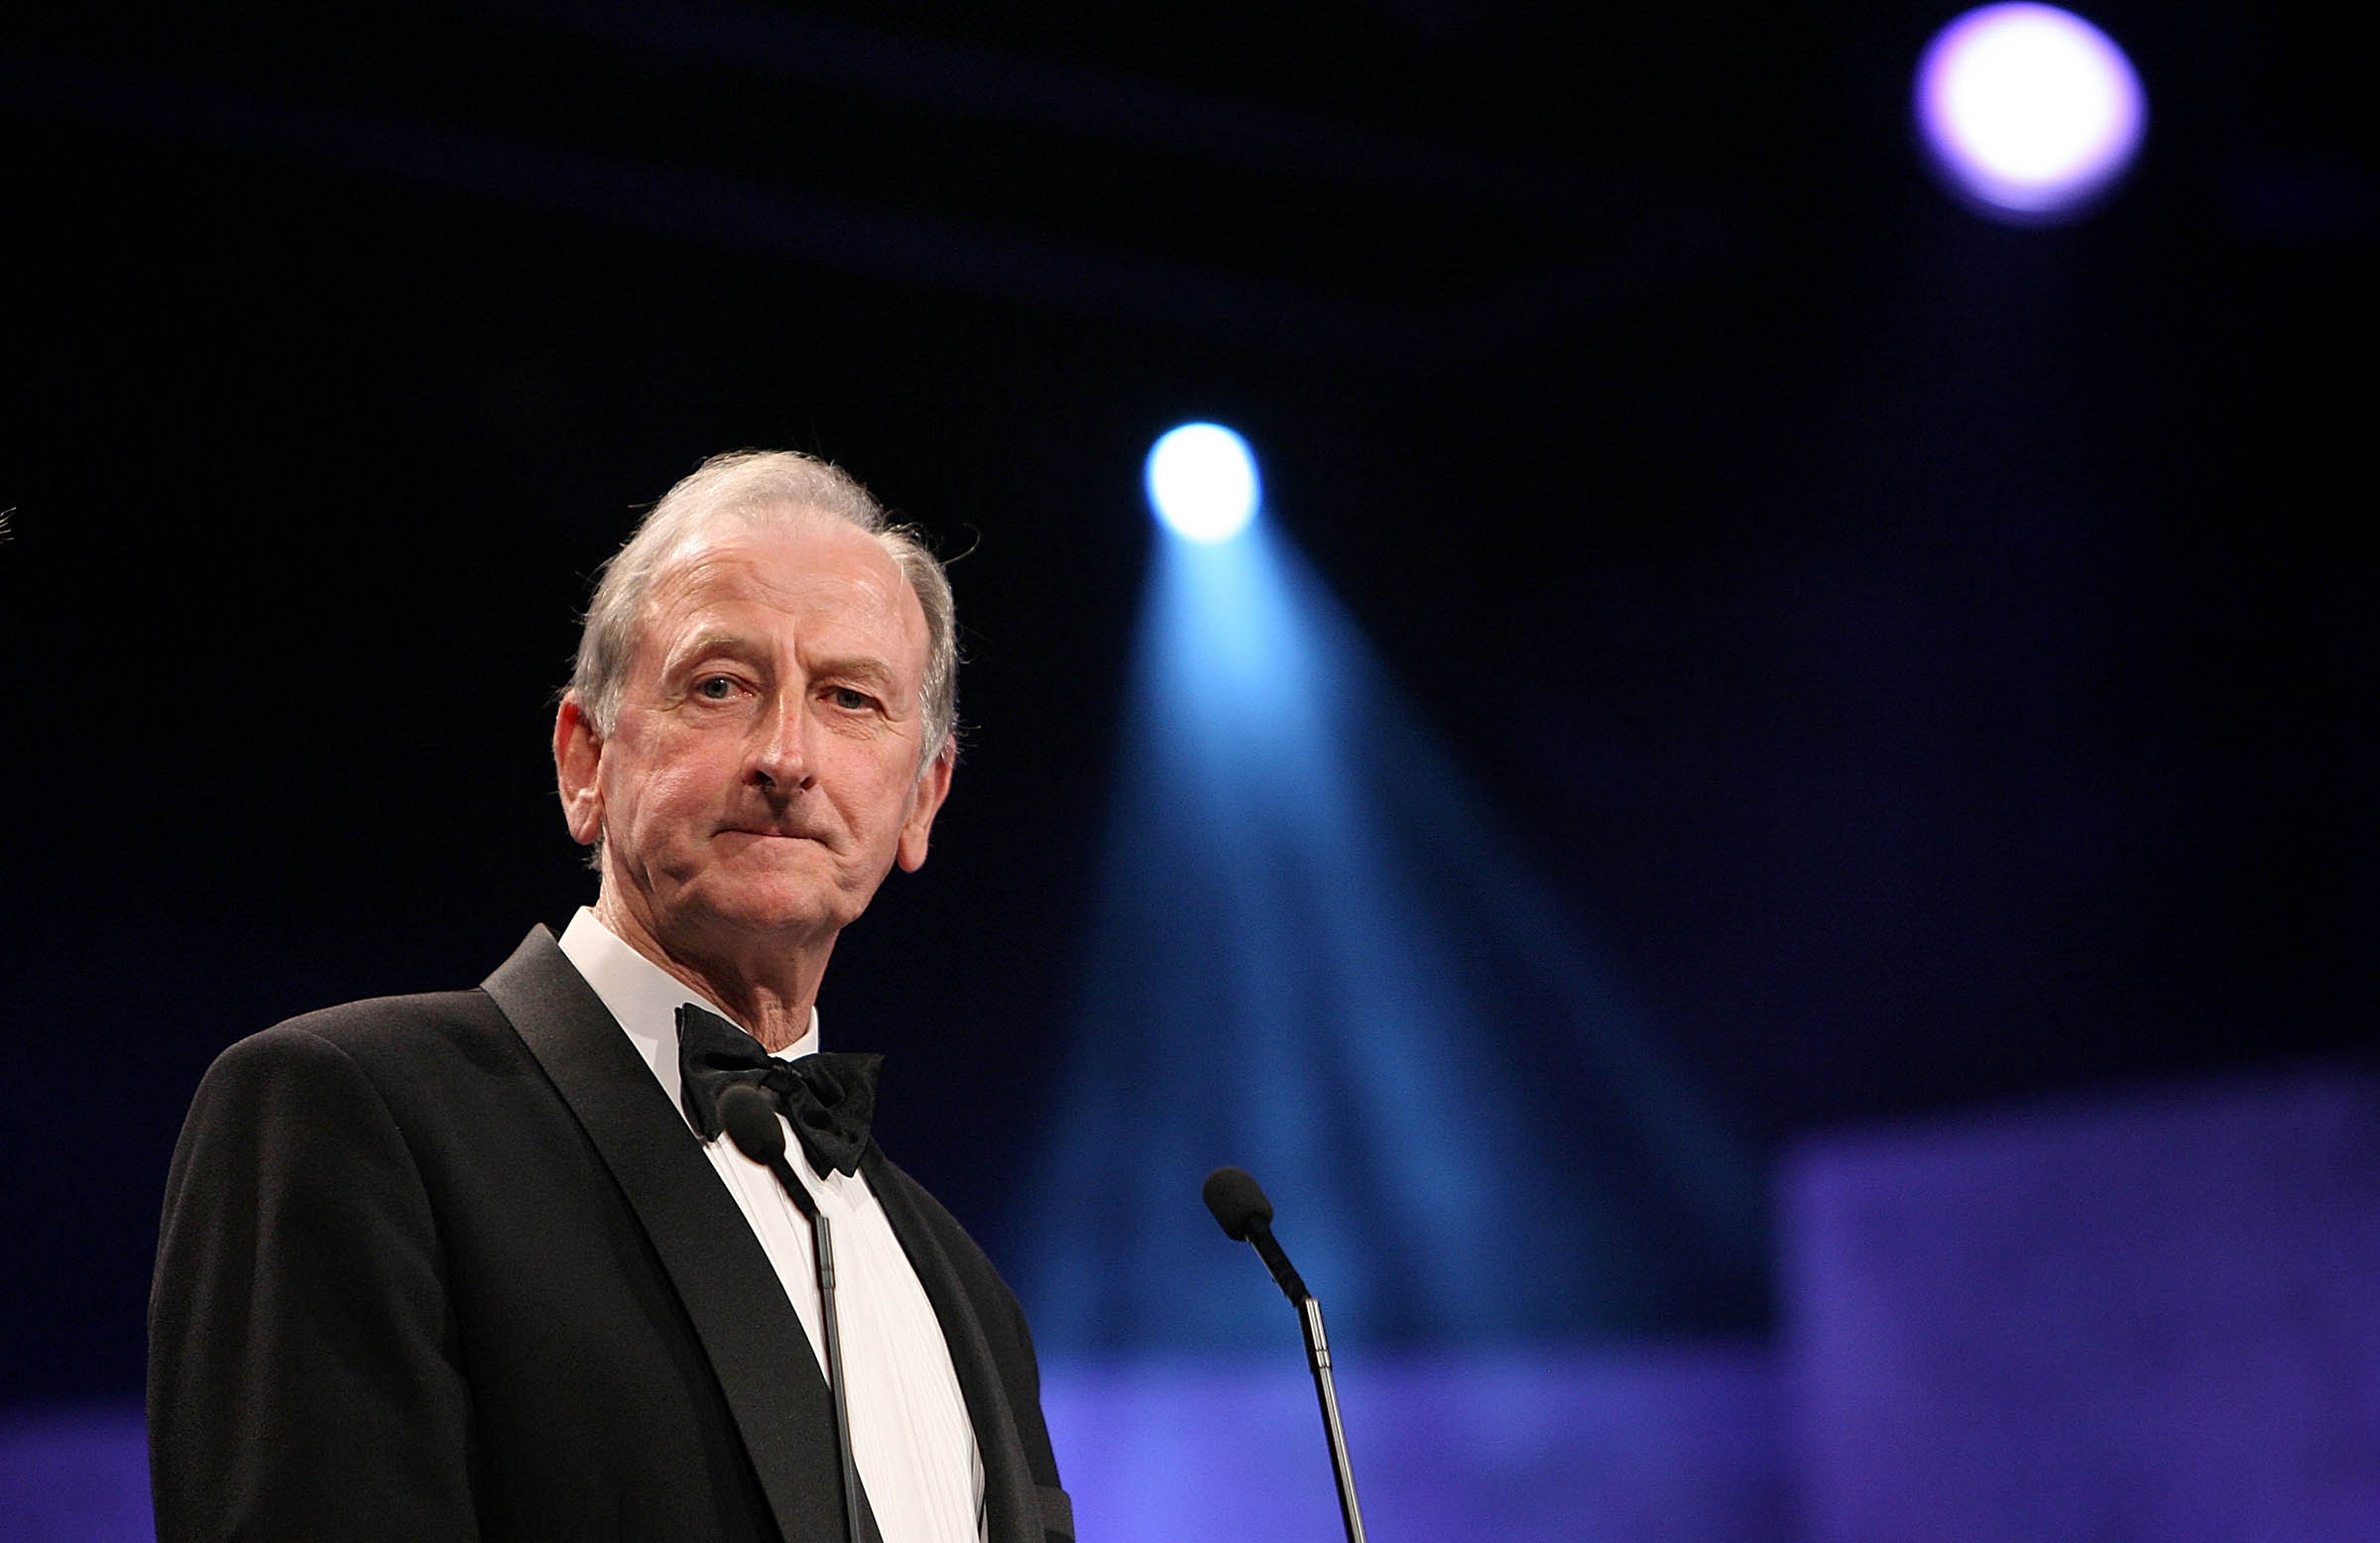 Lawry was inducted into the Australian Cricket Hall of Fame in 2010 // Getty